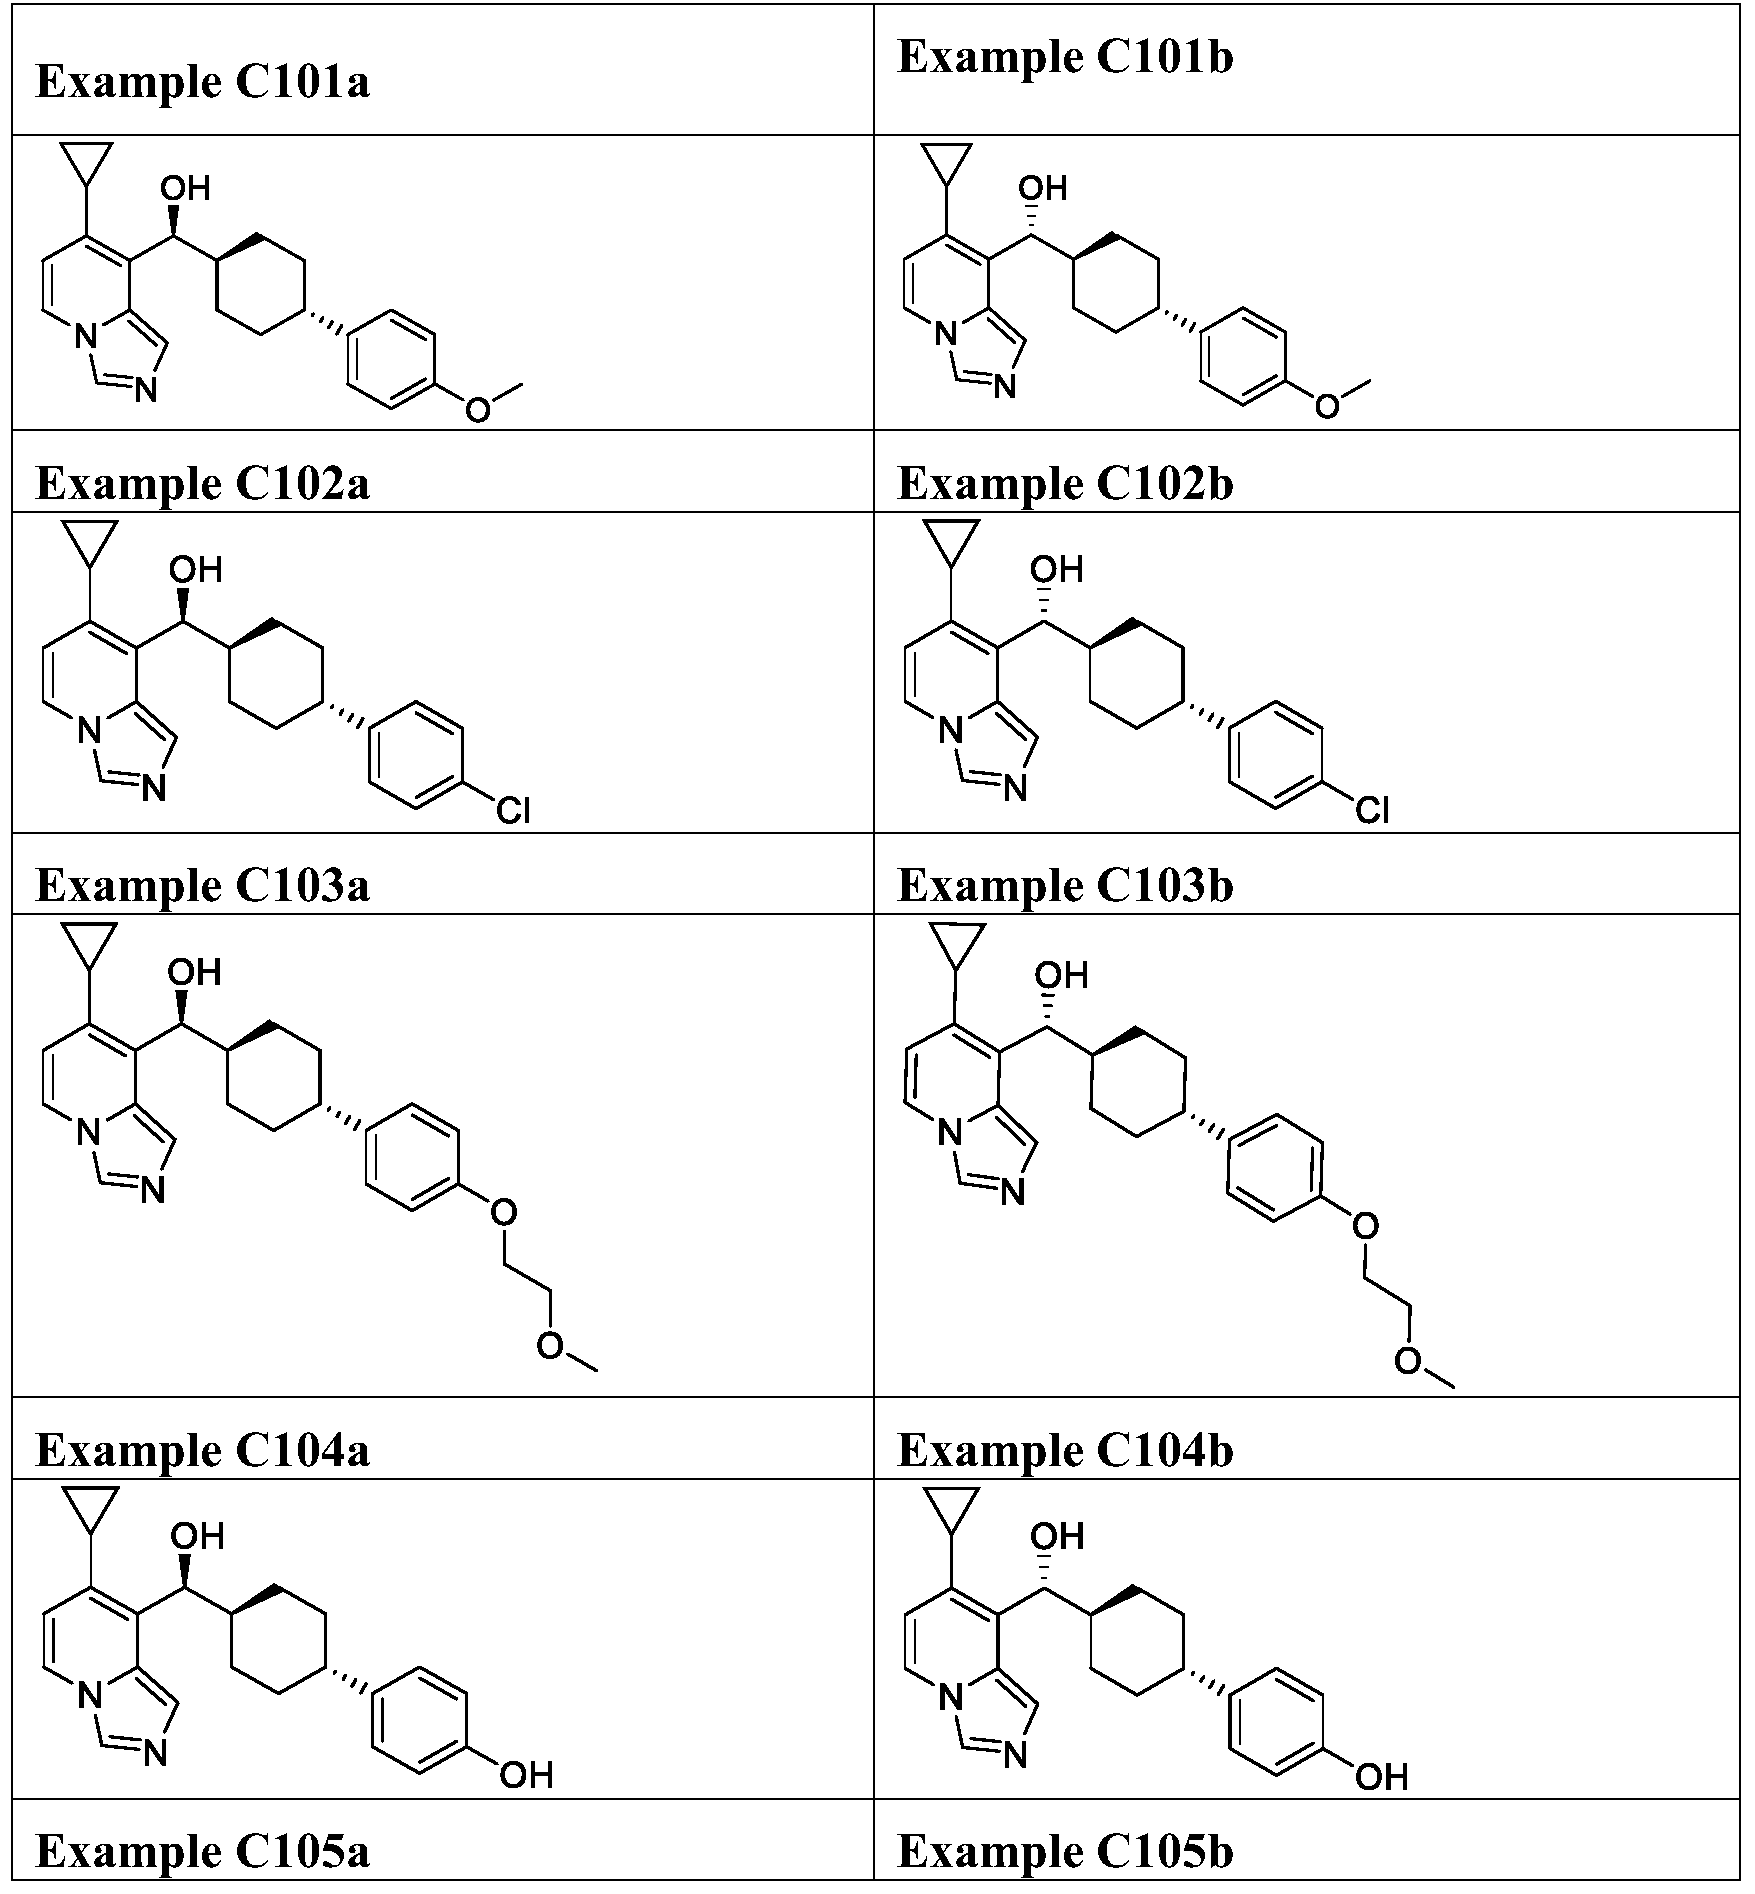 WO2018054365A1 - NOVEL 5 or 8-SUBSTITUTED IMIDAZO [1, 5-a] PYRIDINES